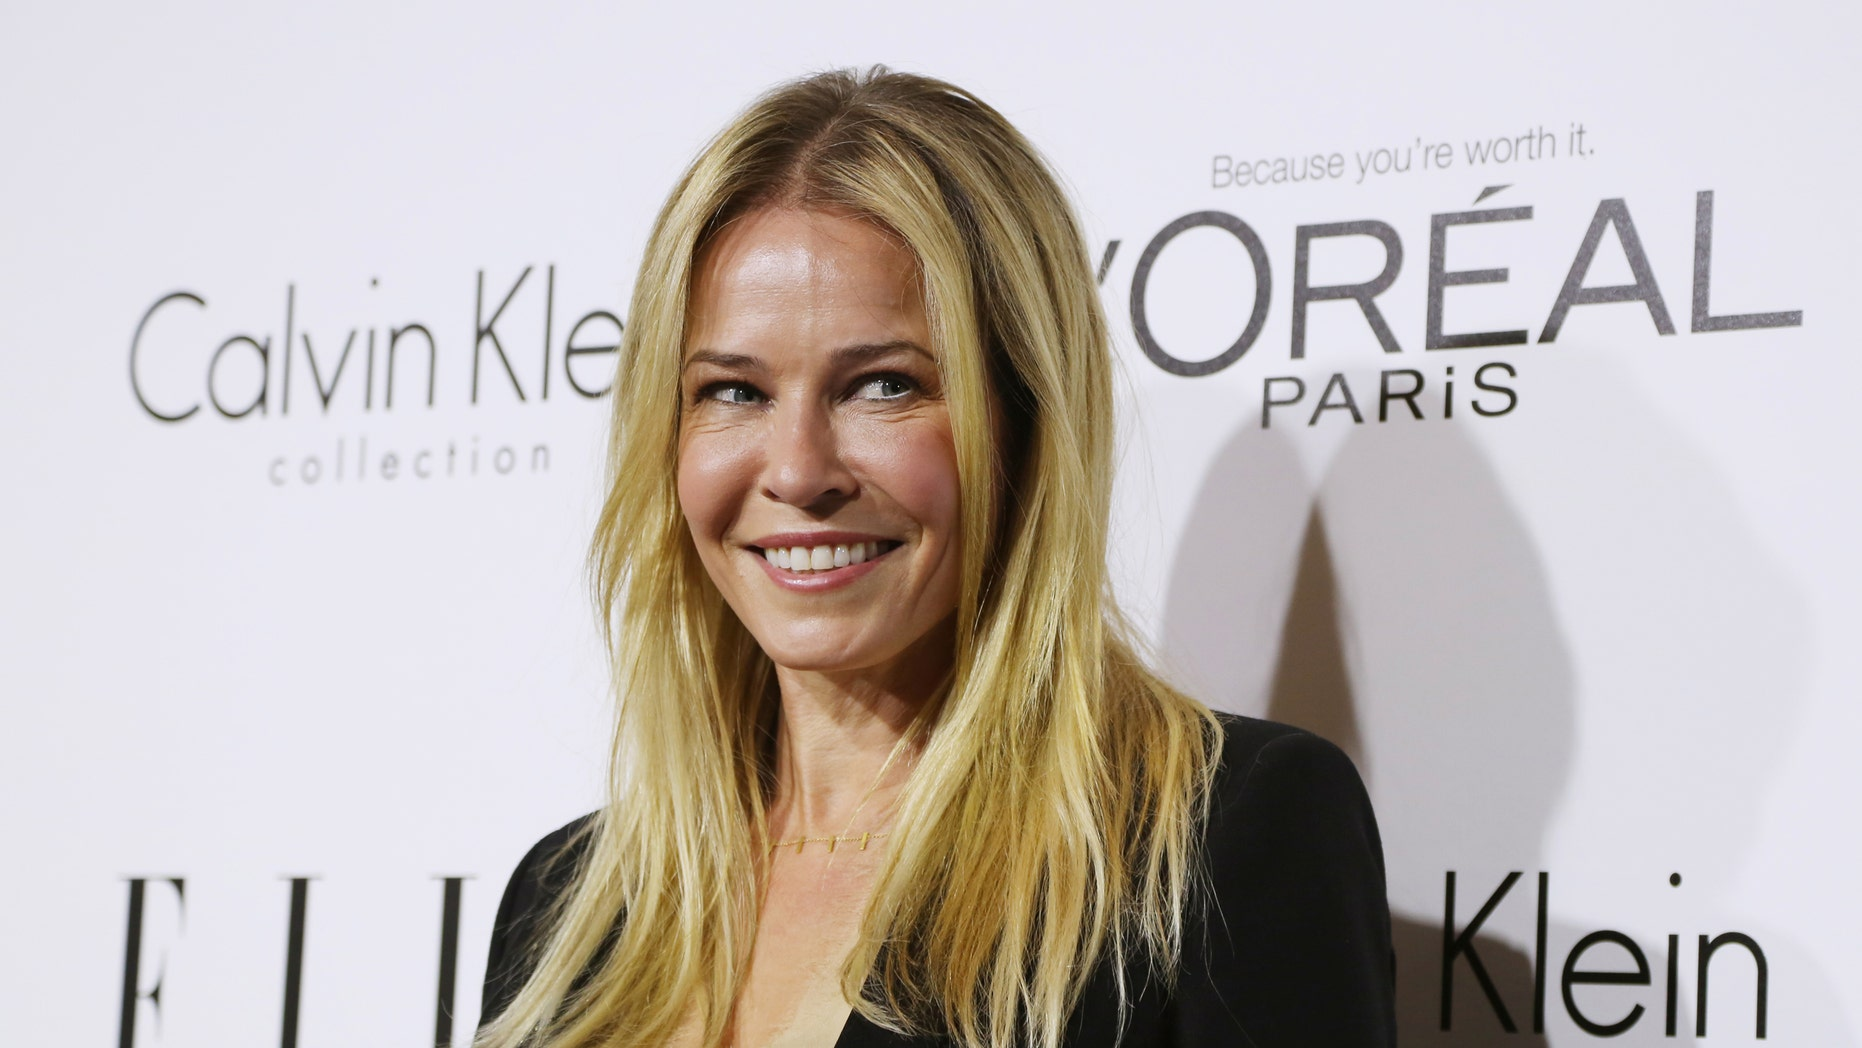 October 21, 2013. Talk show host and actress Chelsea Handler arrives as a guest at the 20th anniversary of ELLE Women in Hollywood event in Los Angeles.